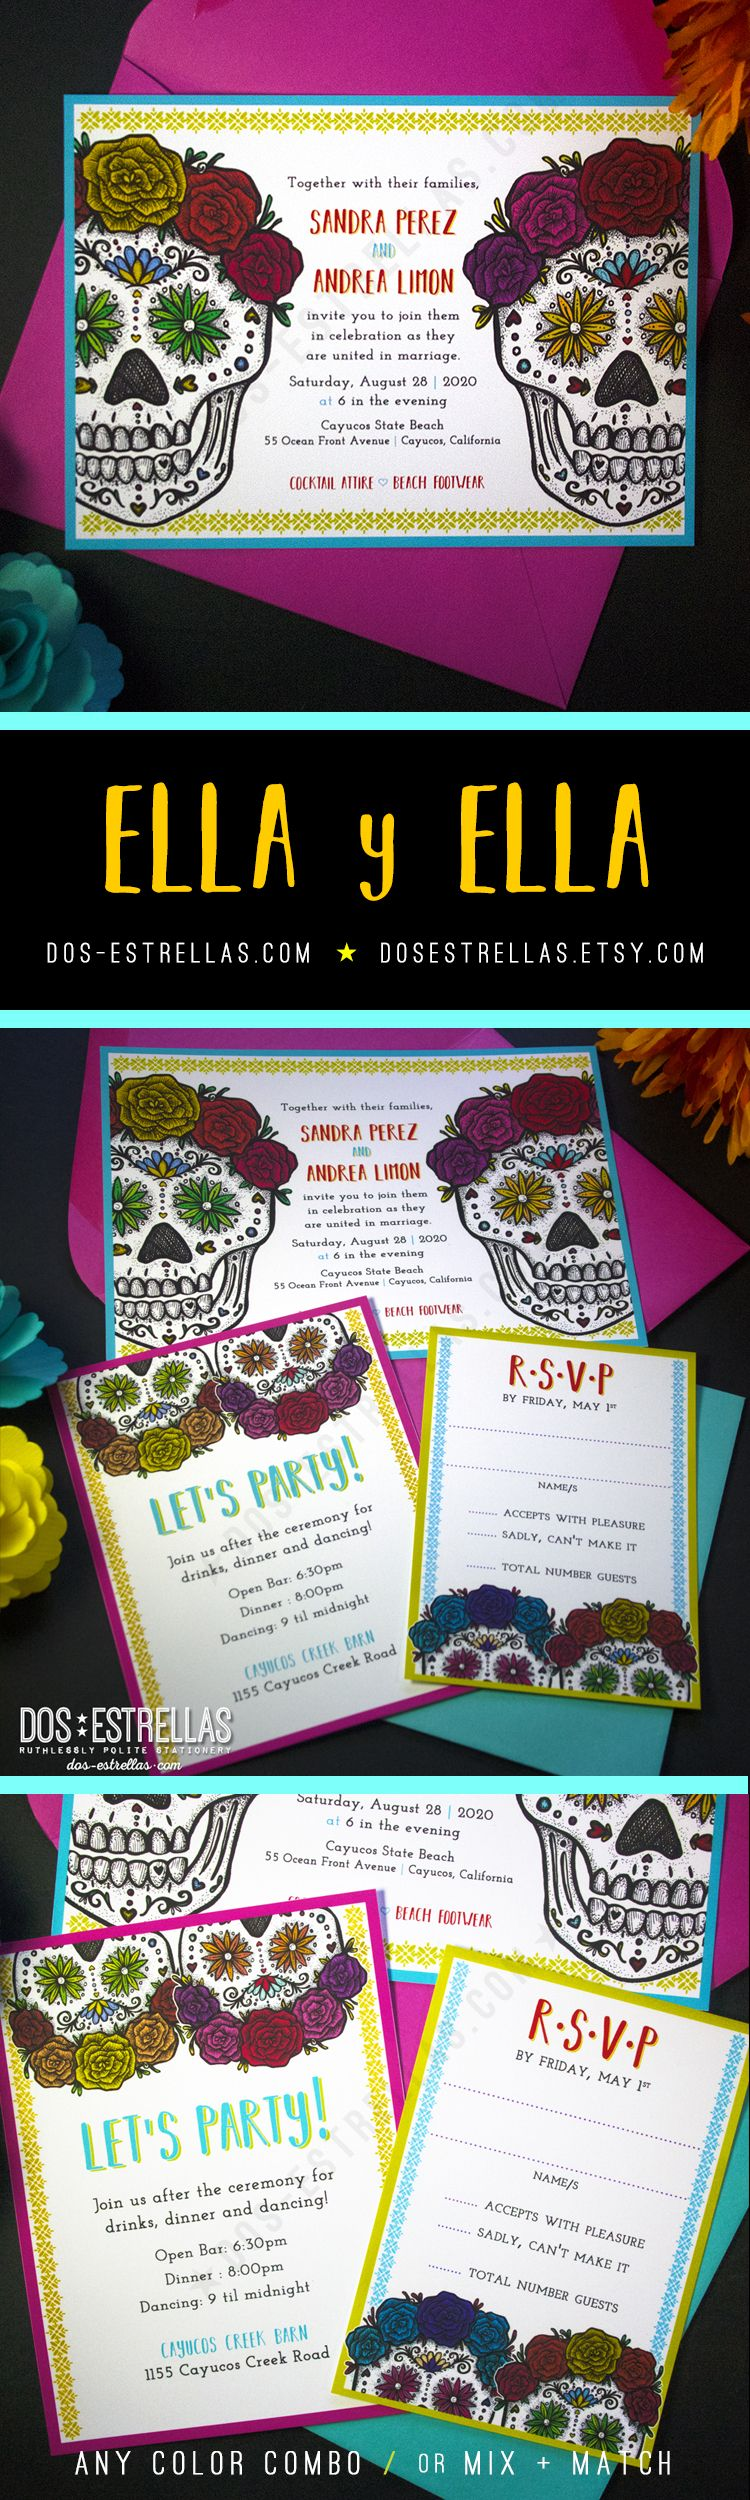 Ella Y Ella Gay Lesbian Wedding Invitations Sugar Skulls